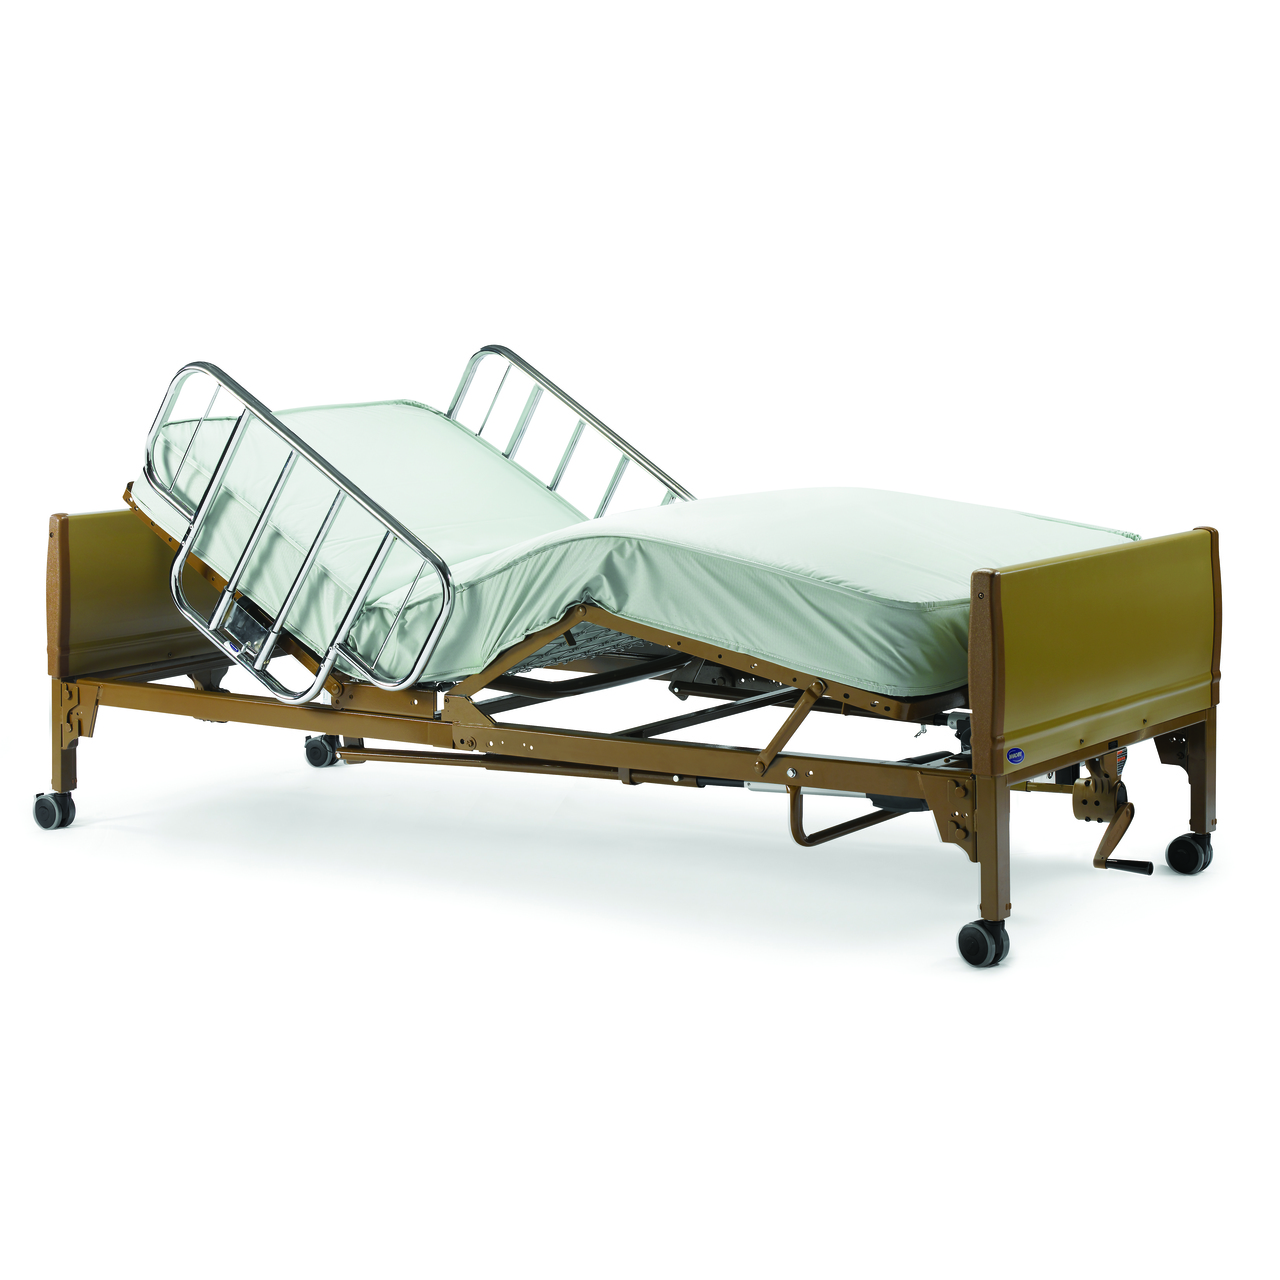 Invacare Semi Electric Hospital Bed Provides Comfort